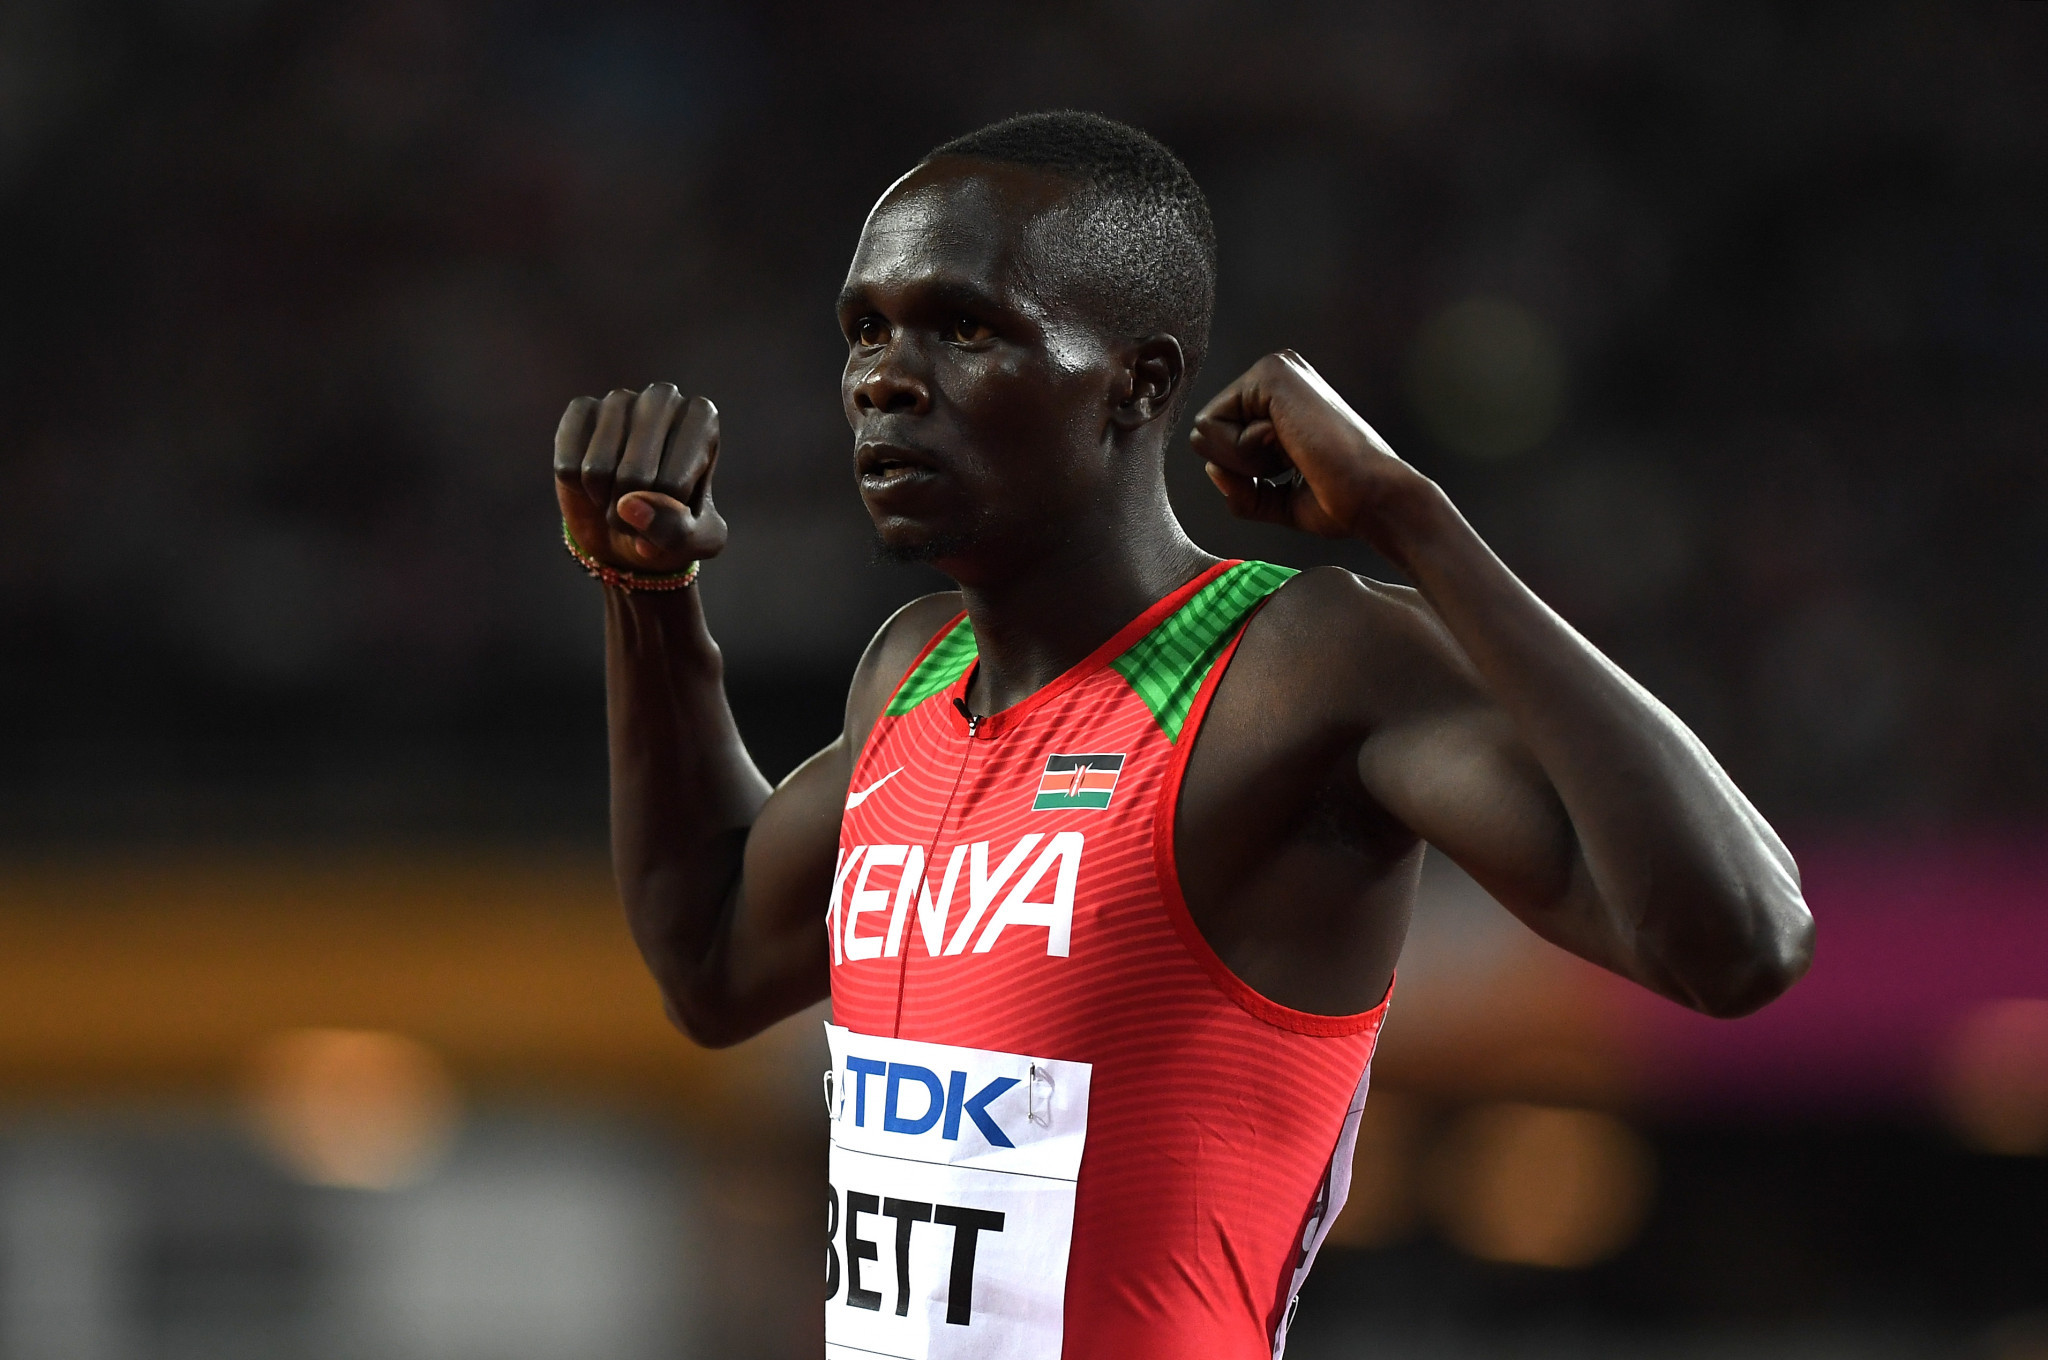 Kipyegon Bett has tested positive for Erythropoietin ©Getty Images